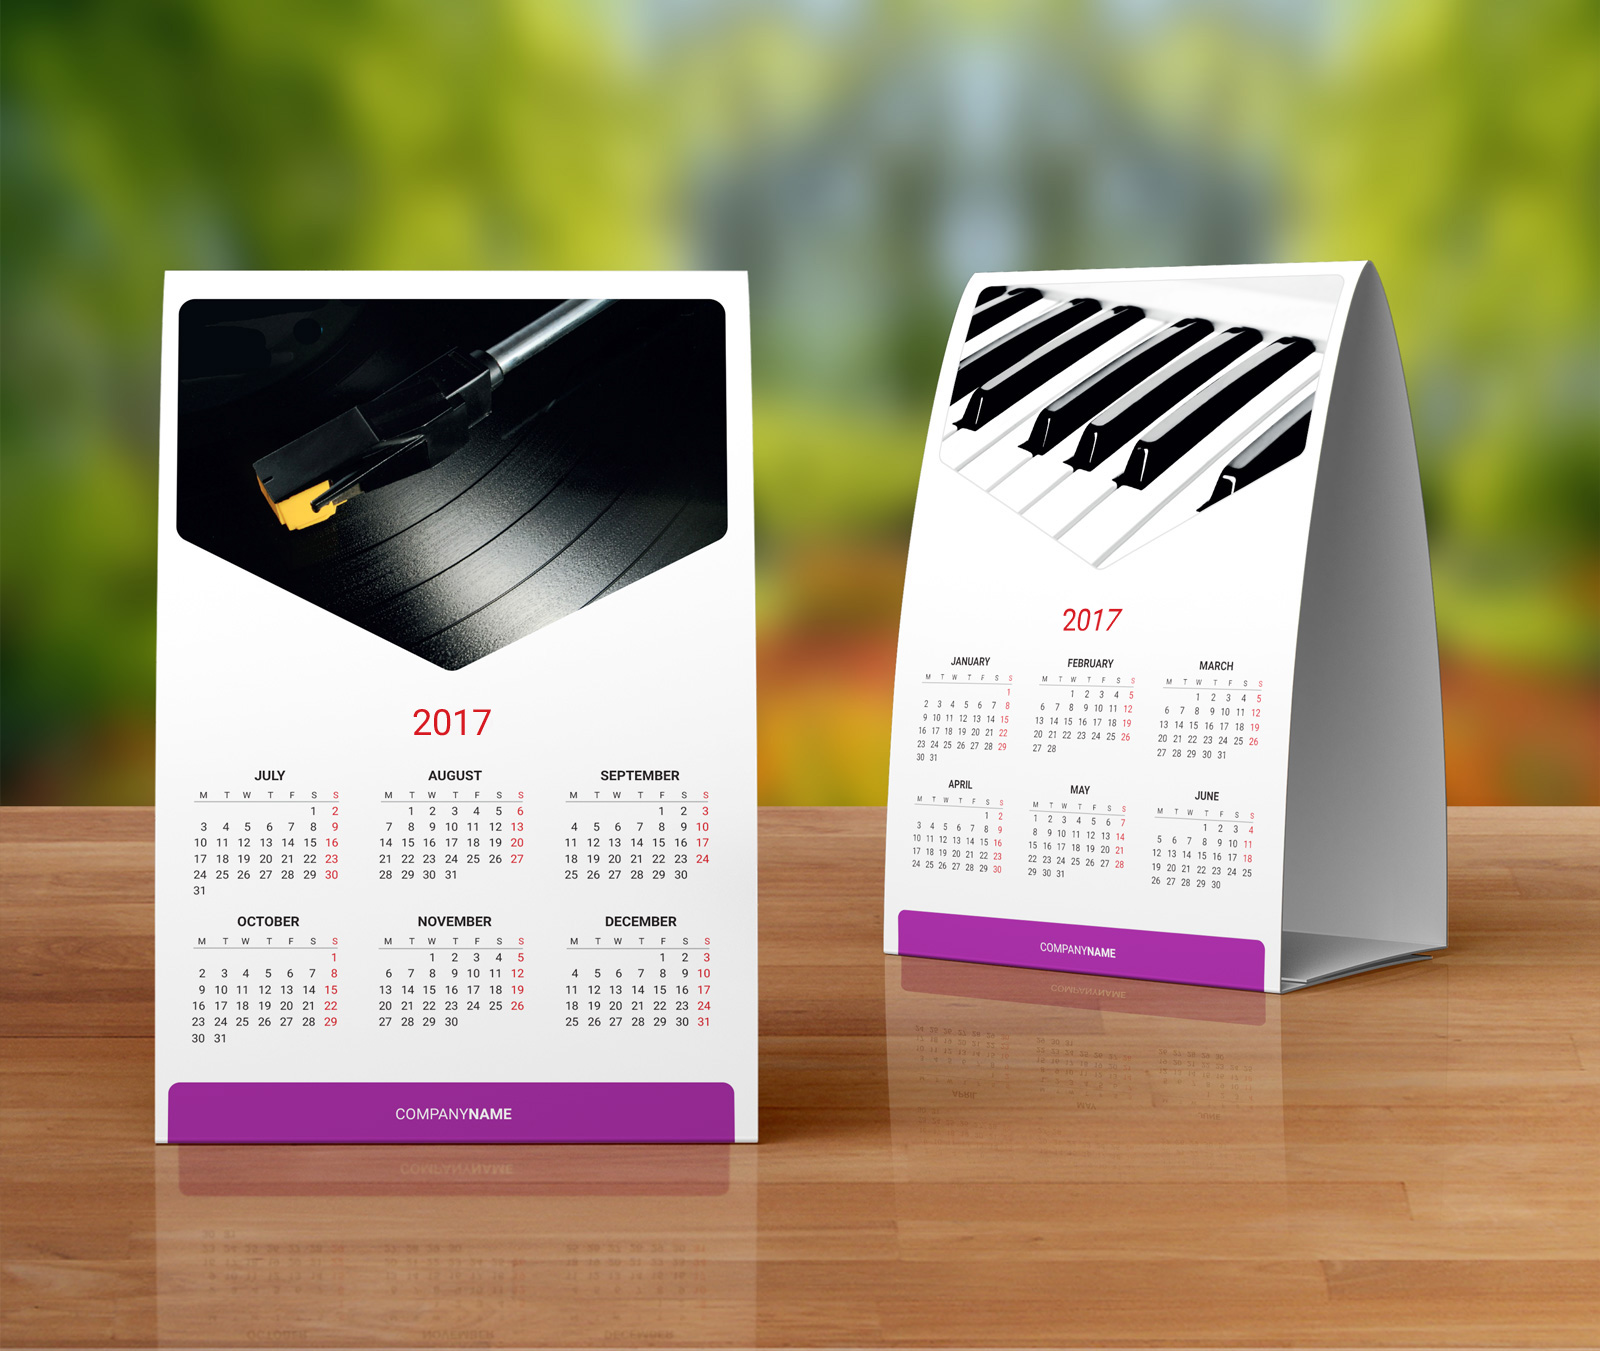 Nice Sample Design Baset On This Desk Calendar Template Regarding Calendar Sample Design